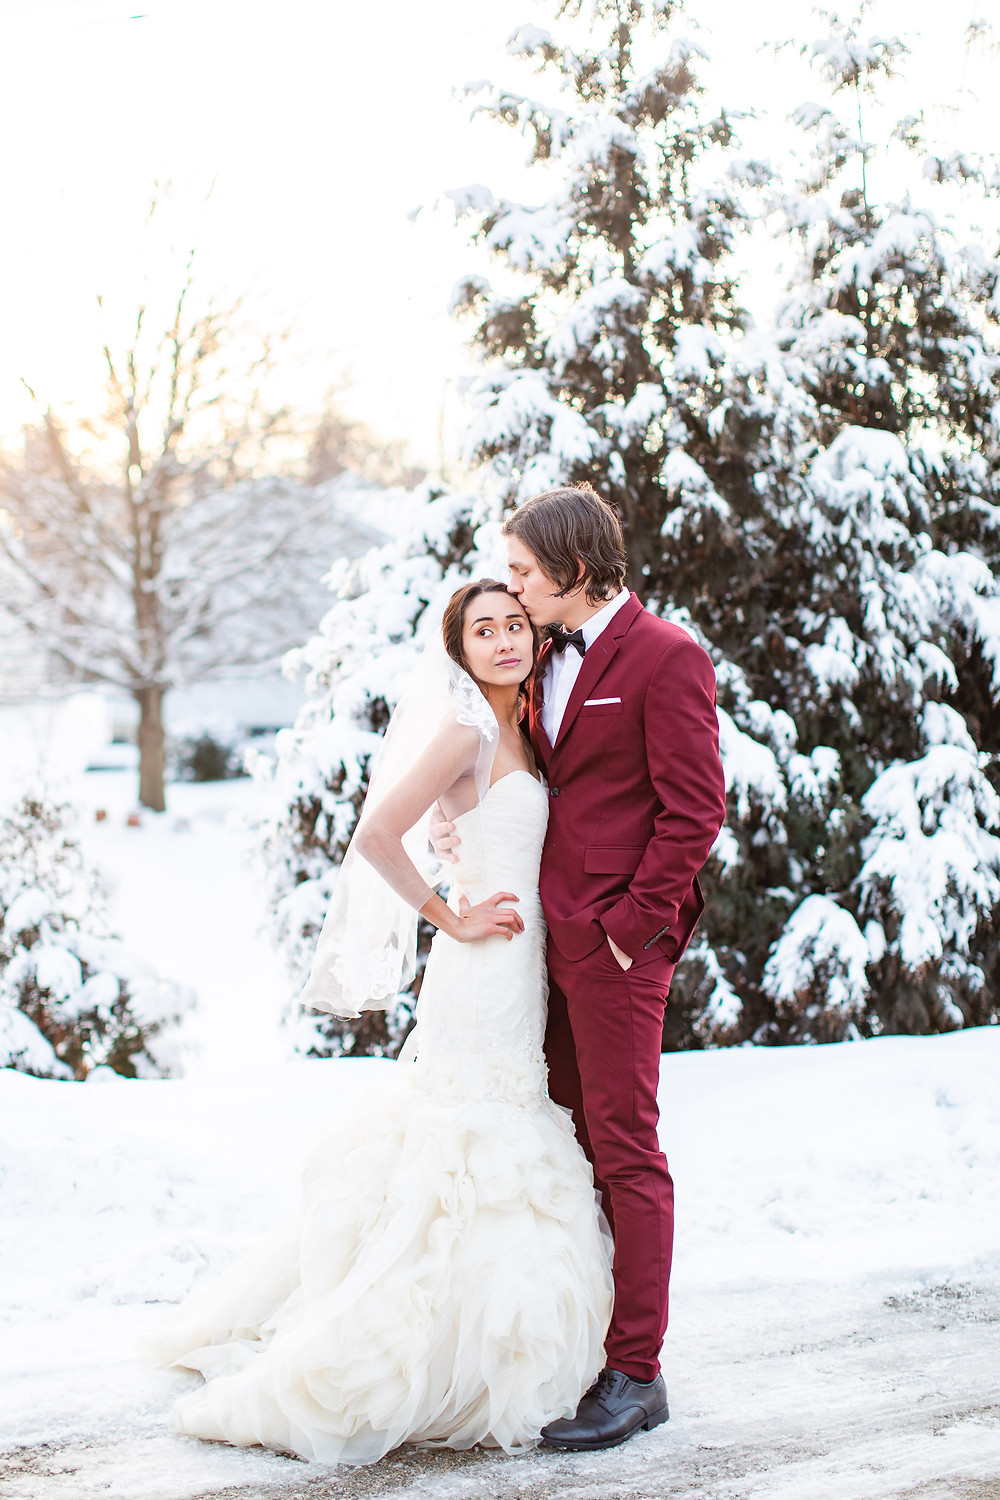 Winter Styled Shoot Sable Creek Winery wedding photographer joliet il wedding pictures pose wedding photographer plainfield